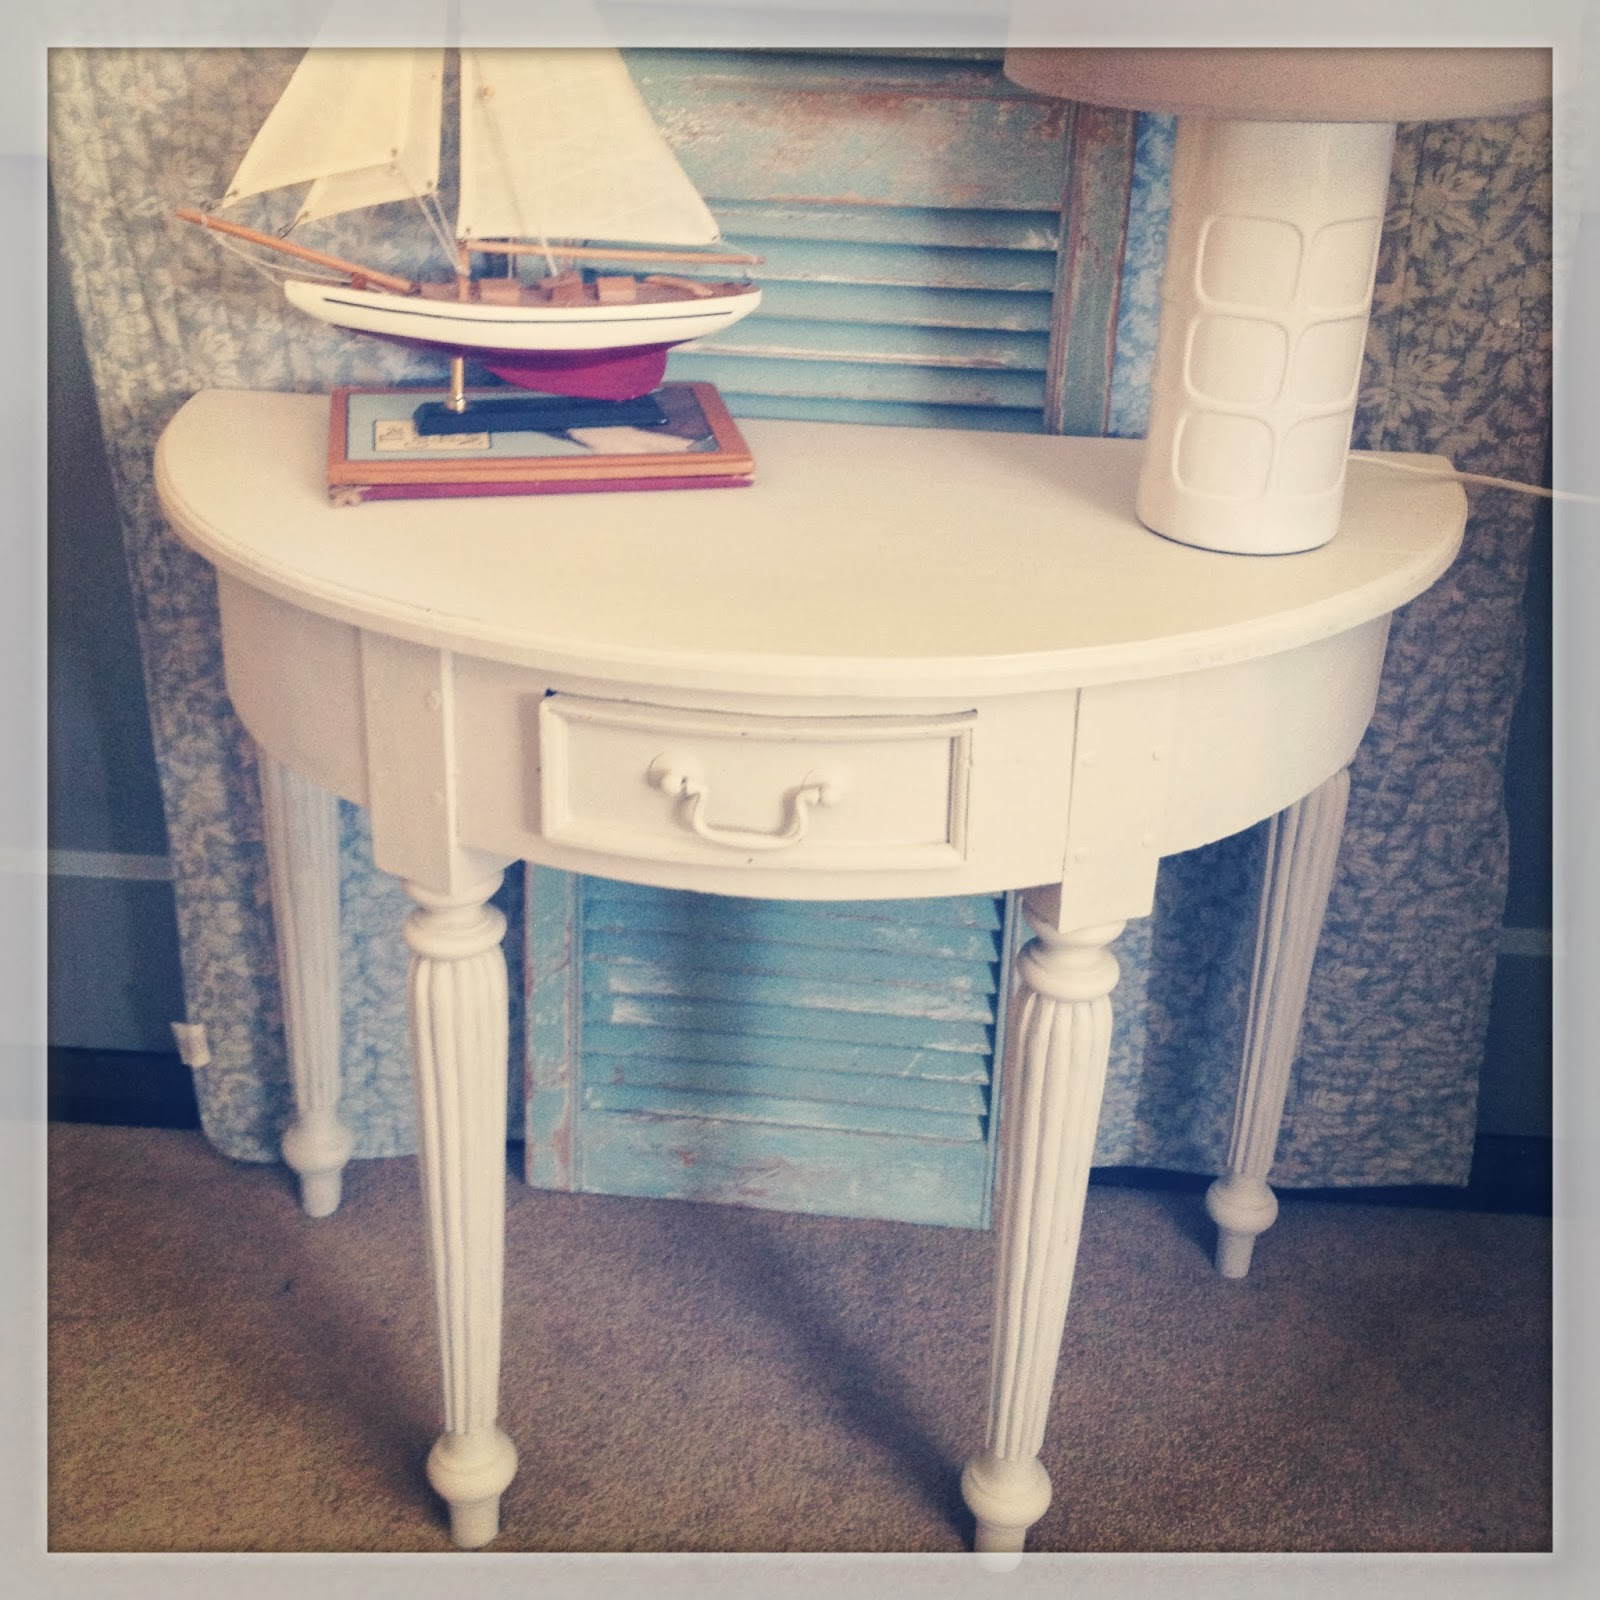 Drip Designs Furniture: White-washed Hall Table